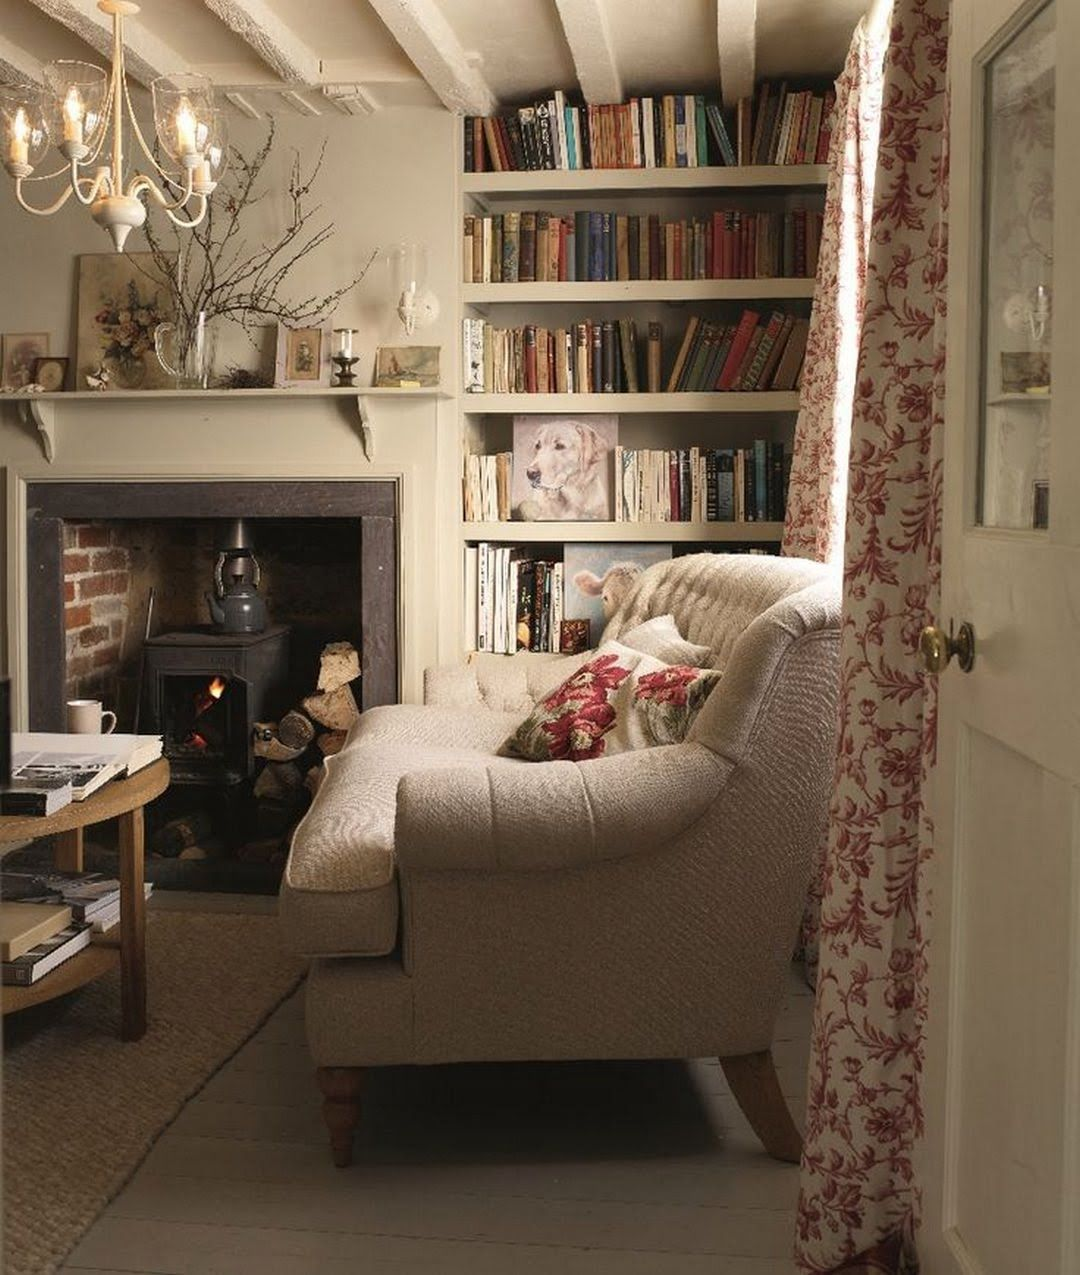 40 Cozy Small Living Room Ideas For English Cottage: 81 Cozy Home Library Interior Ideas (With Images